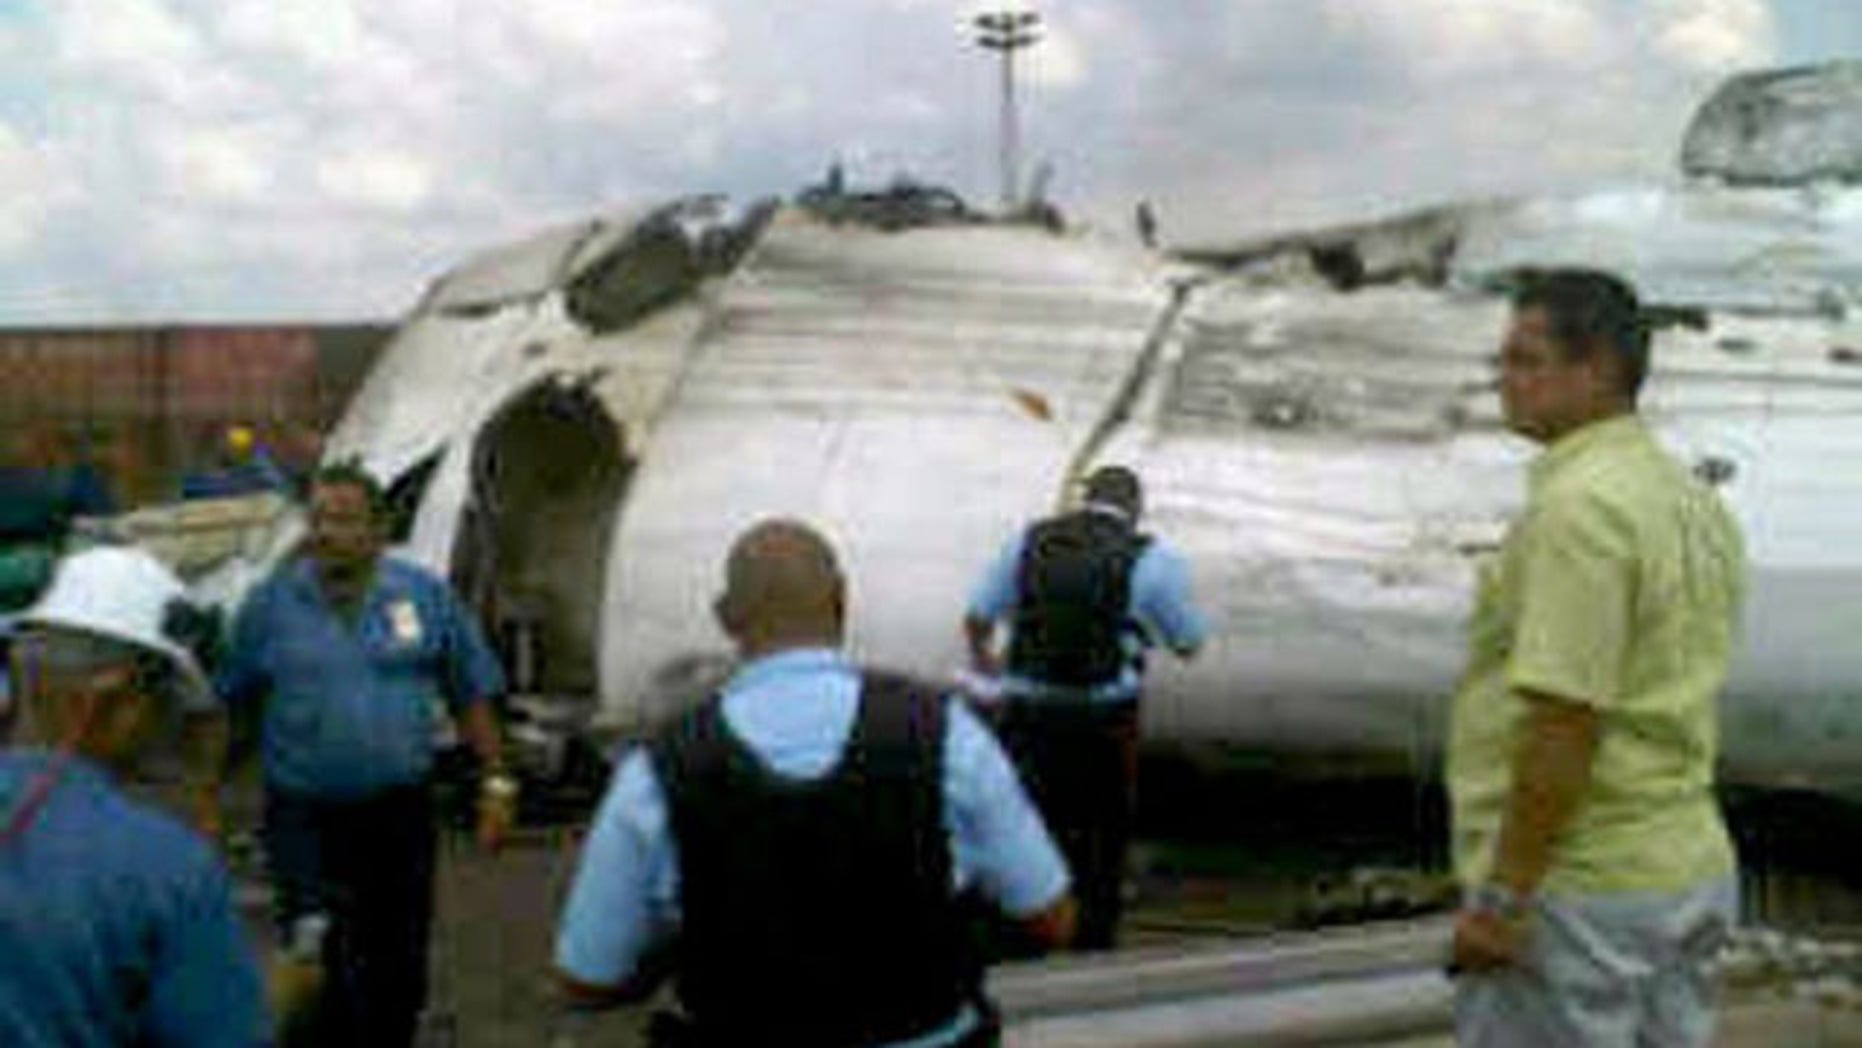 Sept. 13: A picture shows rescue workers at the place where an ATR-42 plane crashed in Puerto Ordaz. The plane owned by Venezuela's state-run airline Conviasa crashed Monday during a domestic flight with 47 people on board and came down on property belonging to government steel maker Sidor, authorities said (Reuters).